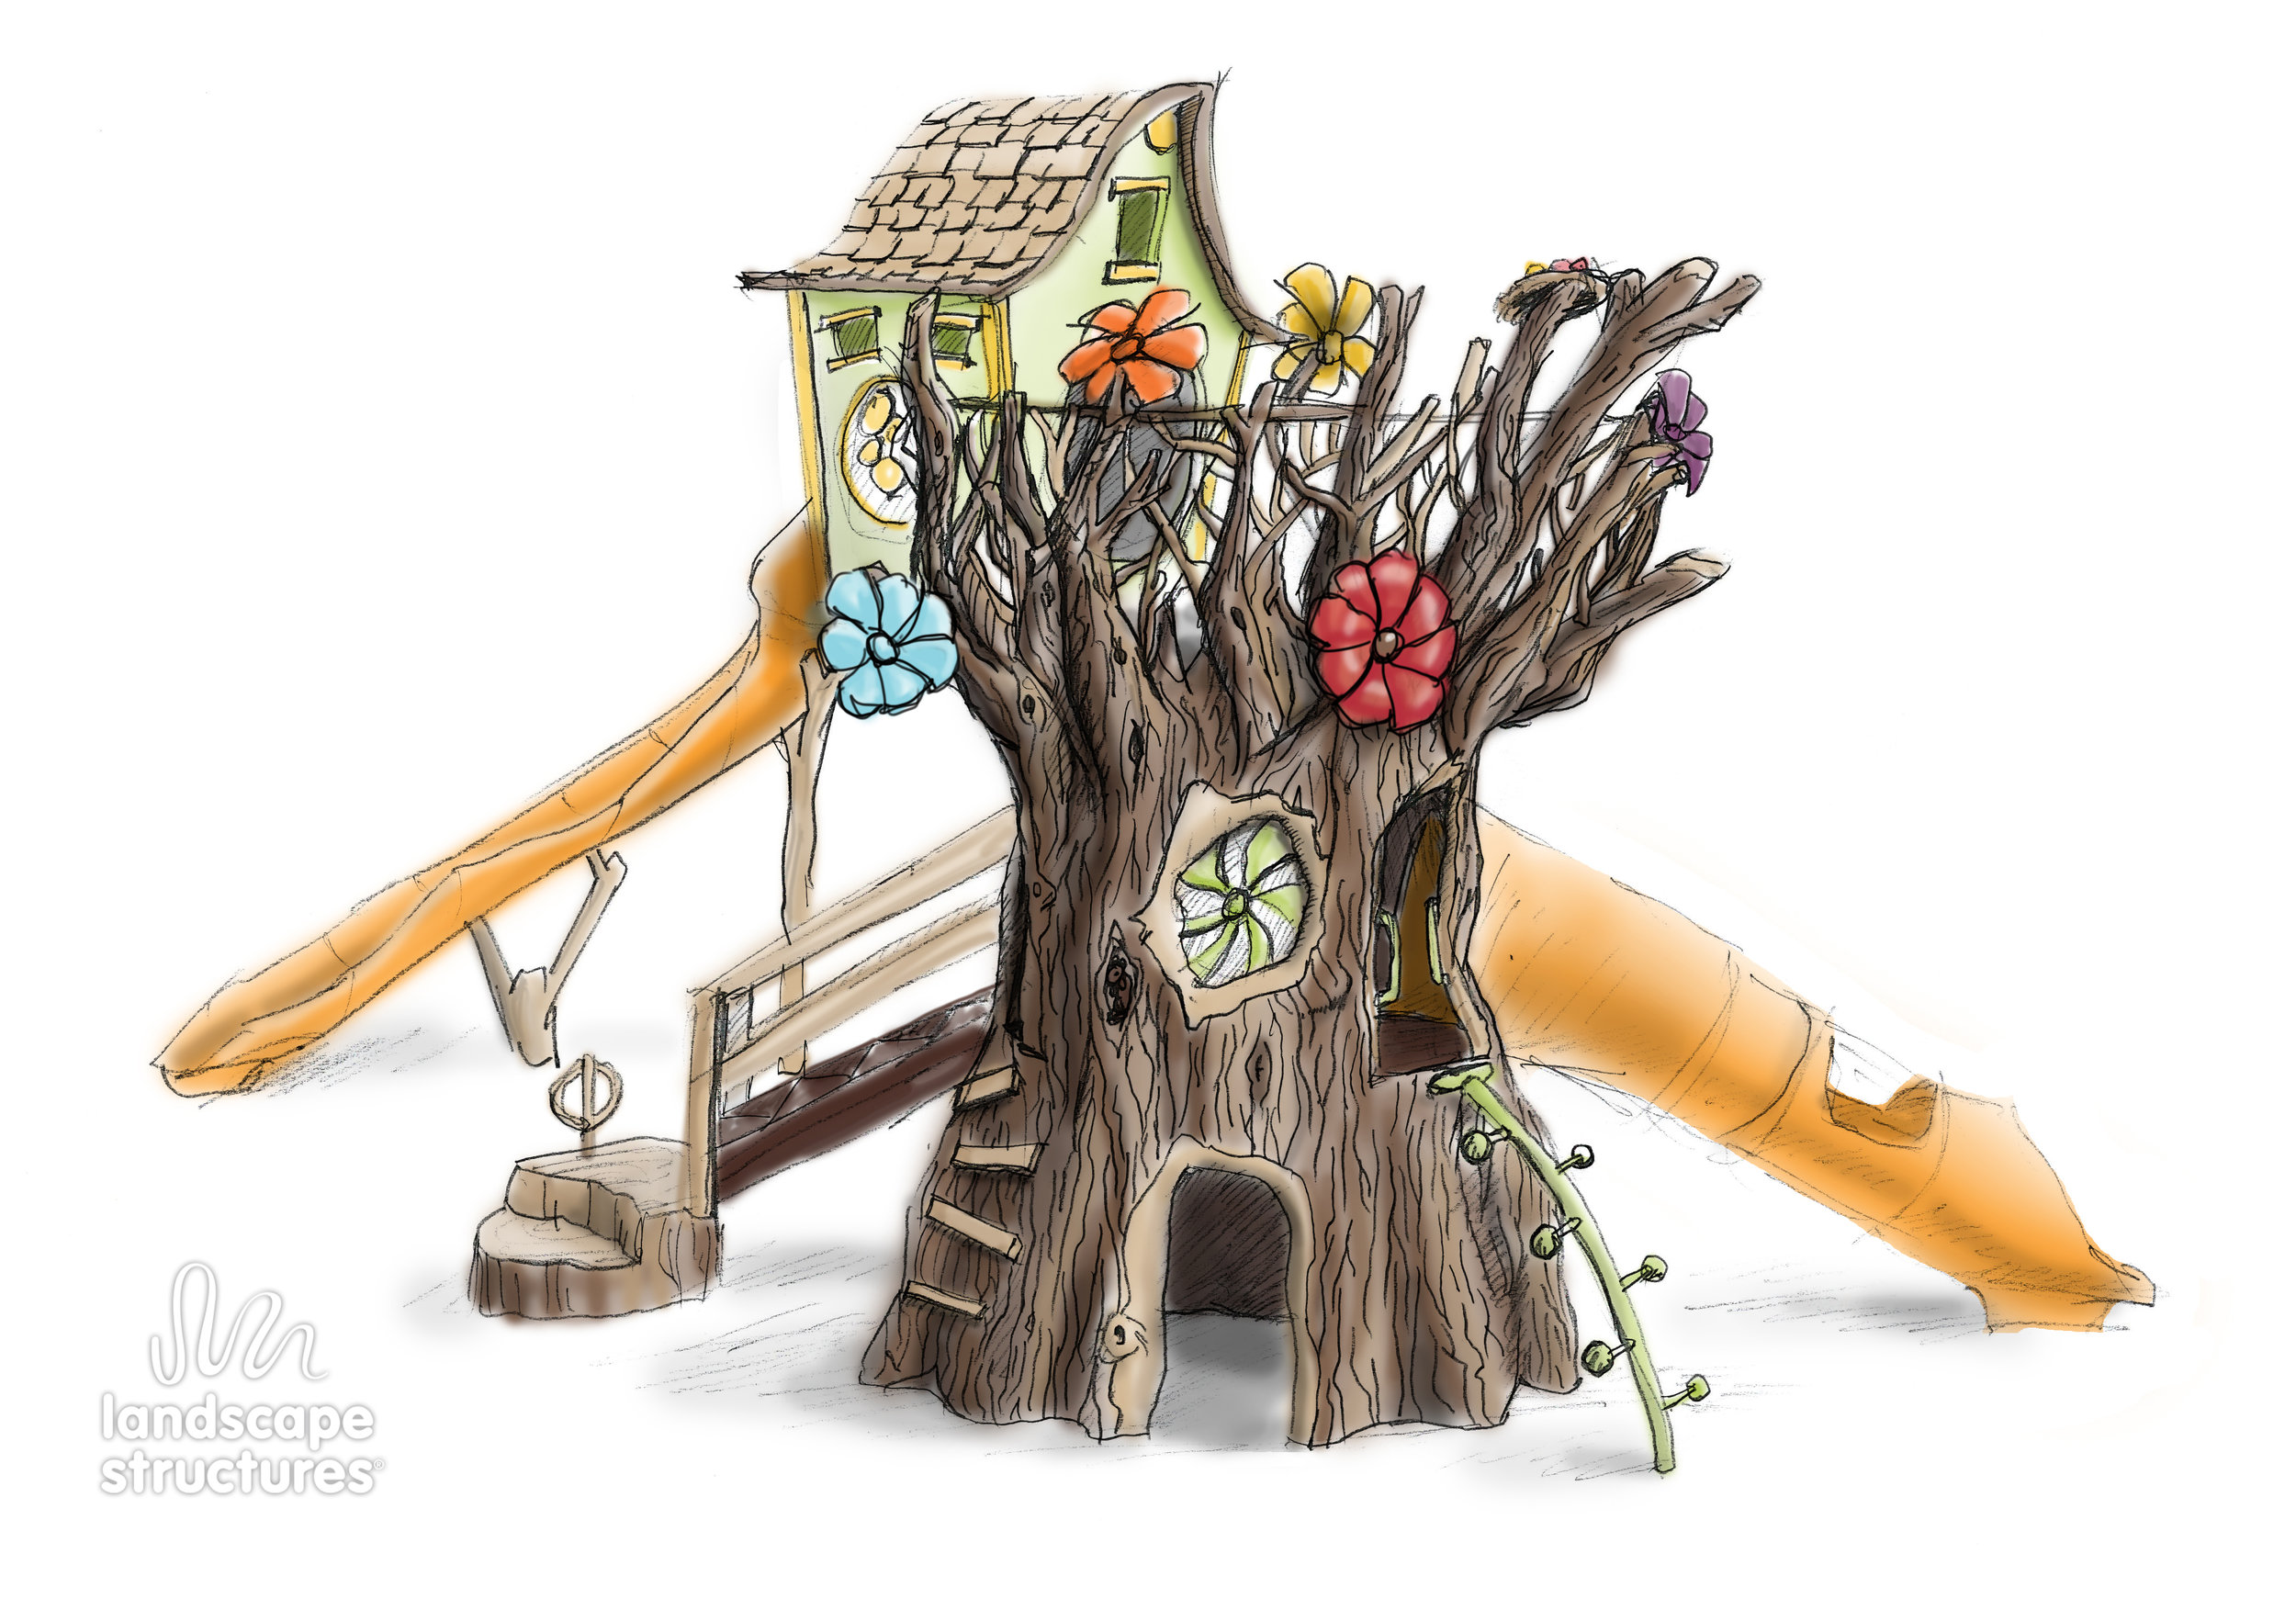 1127595-02-02-Treehouse Sketch.jpg